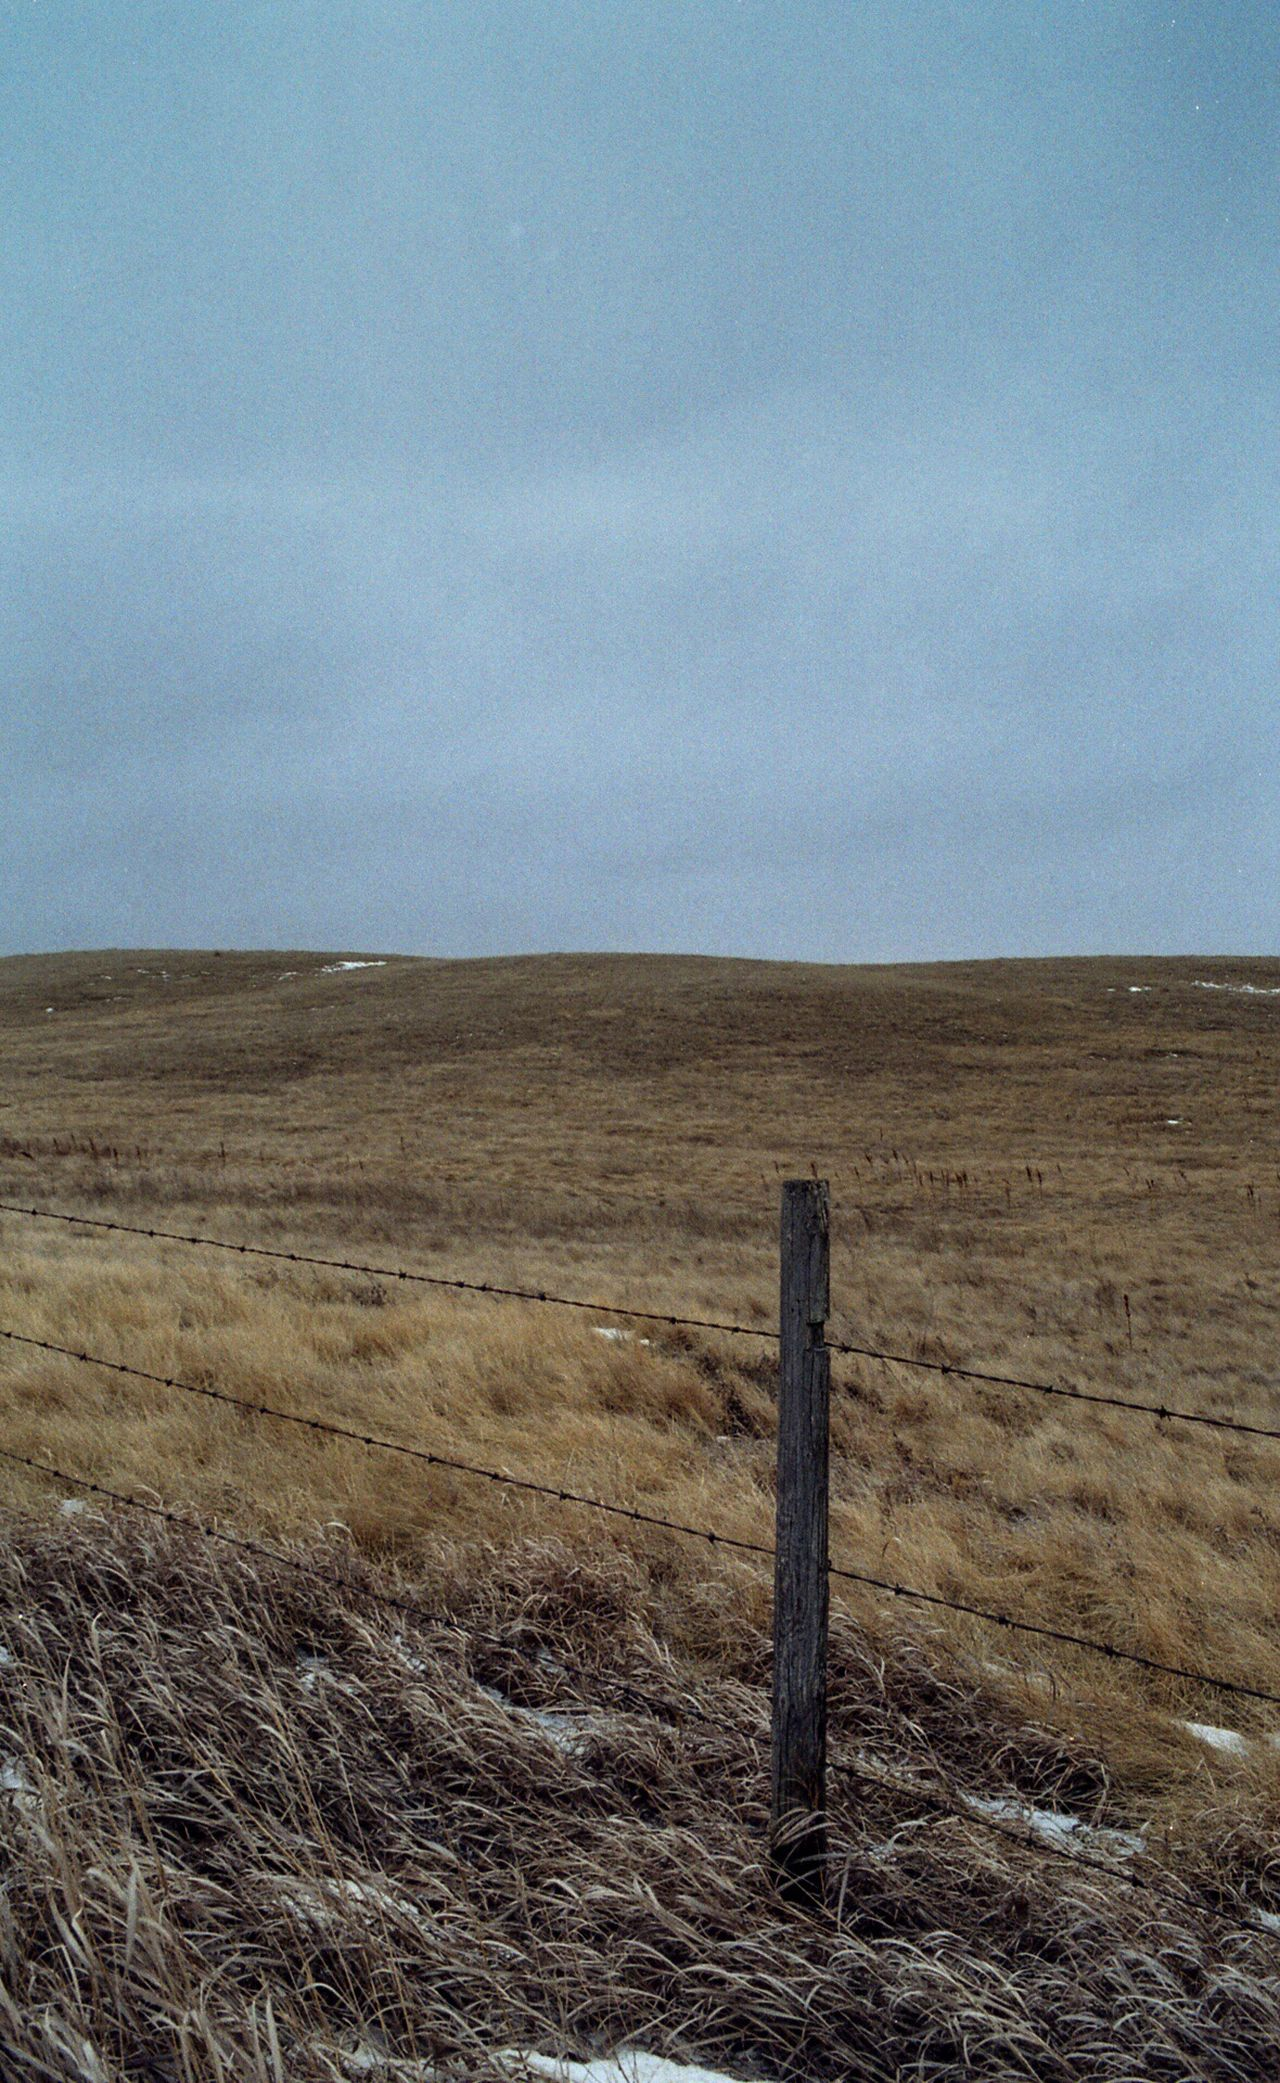 Landscape Film Photography Kodak200 Kodak Film Buyfilmnotmegapixels I Shoot Film Southern Saskatchewan Fences Overcast Skies Farmland Pasture